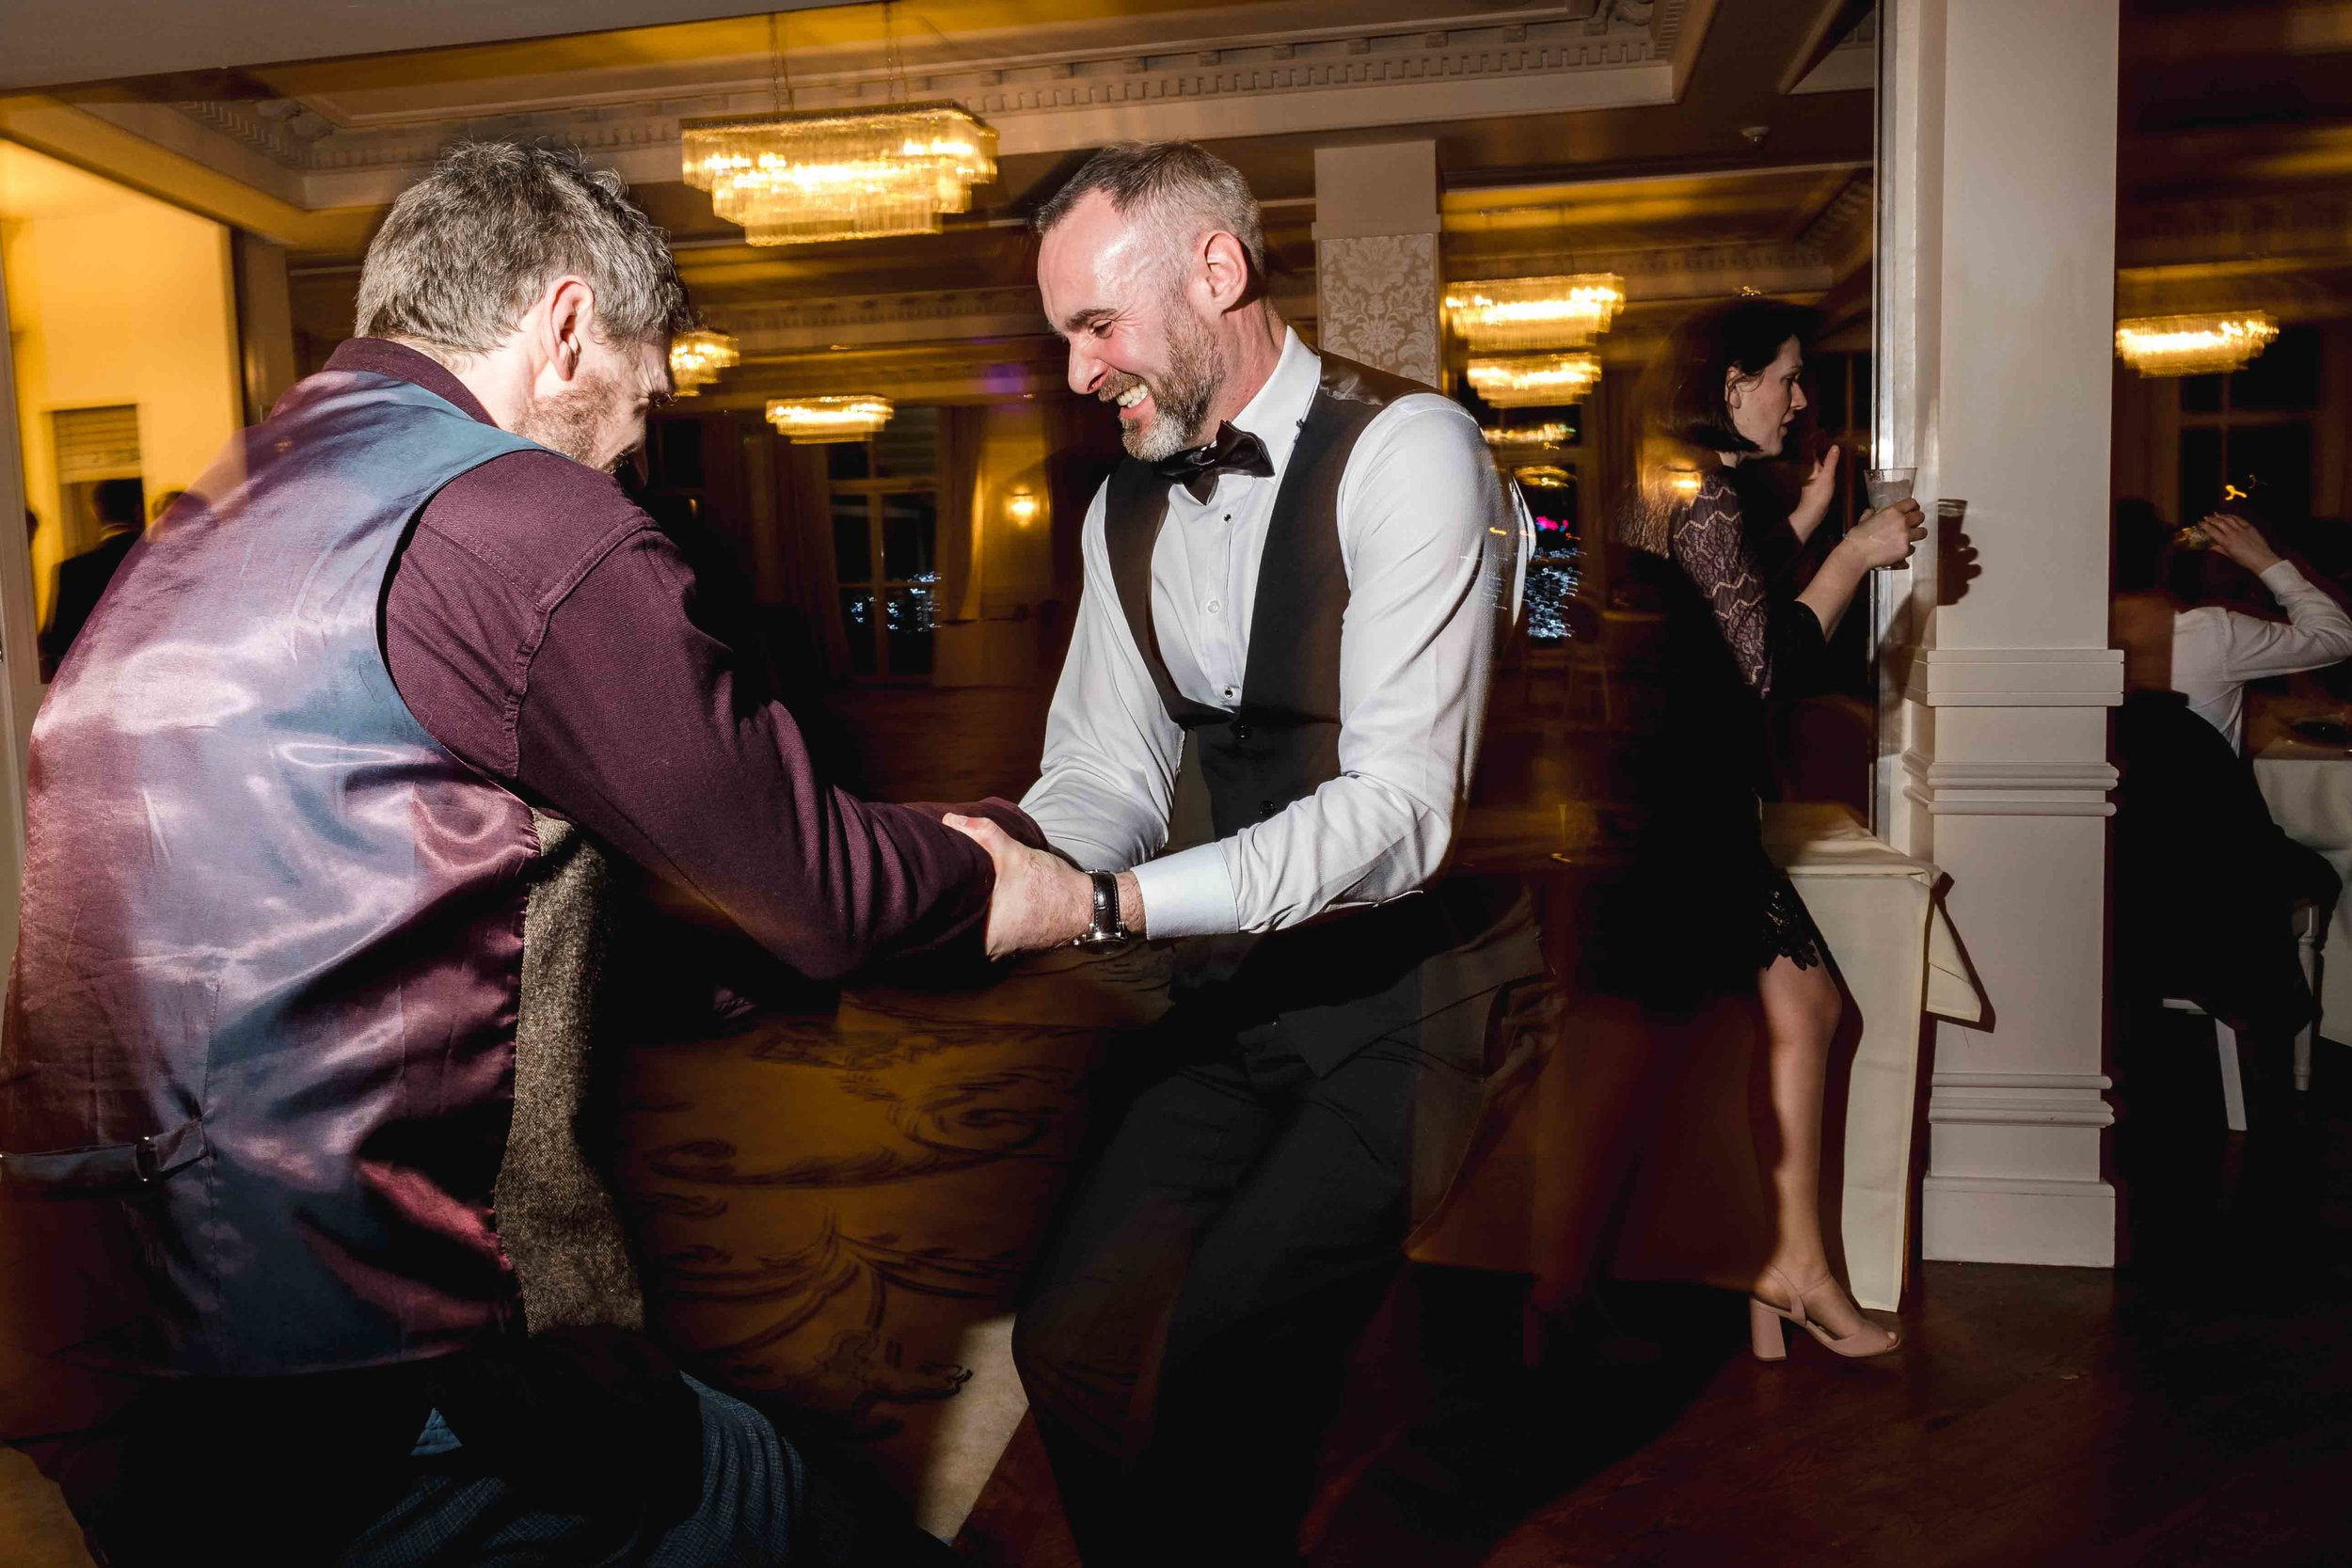 wedding dance floor photograph at Carlingford Four Seasons Ireland